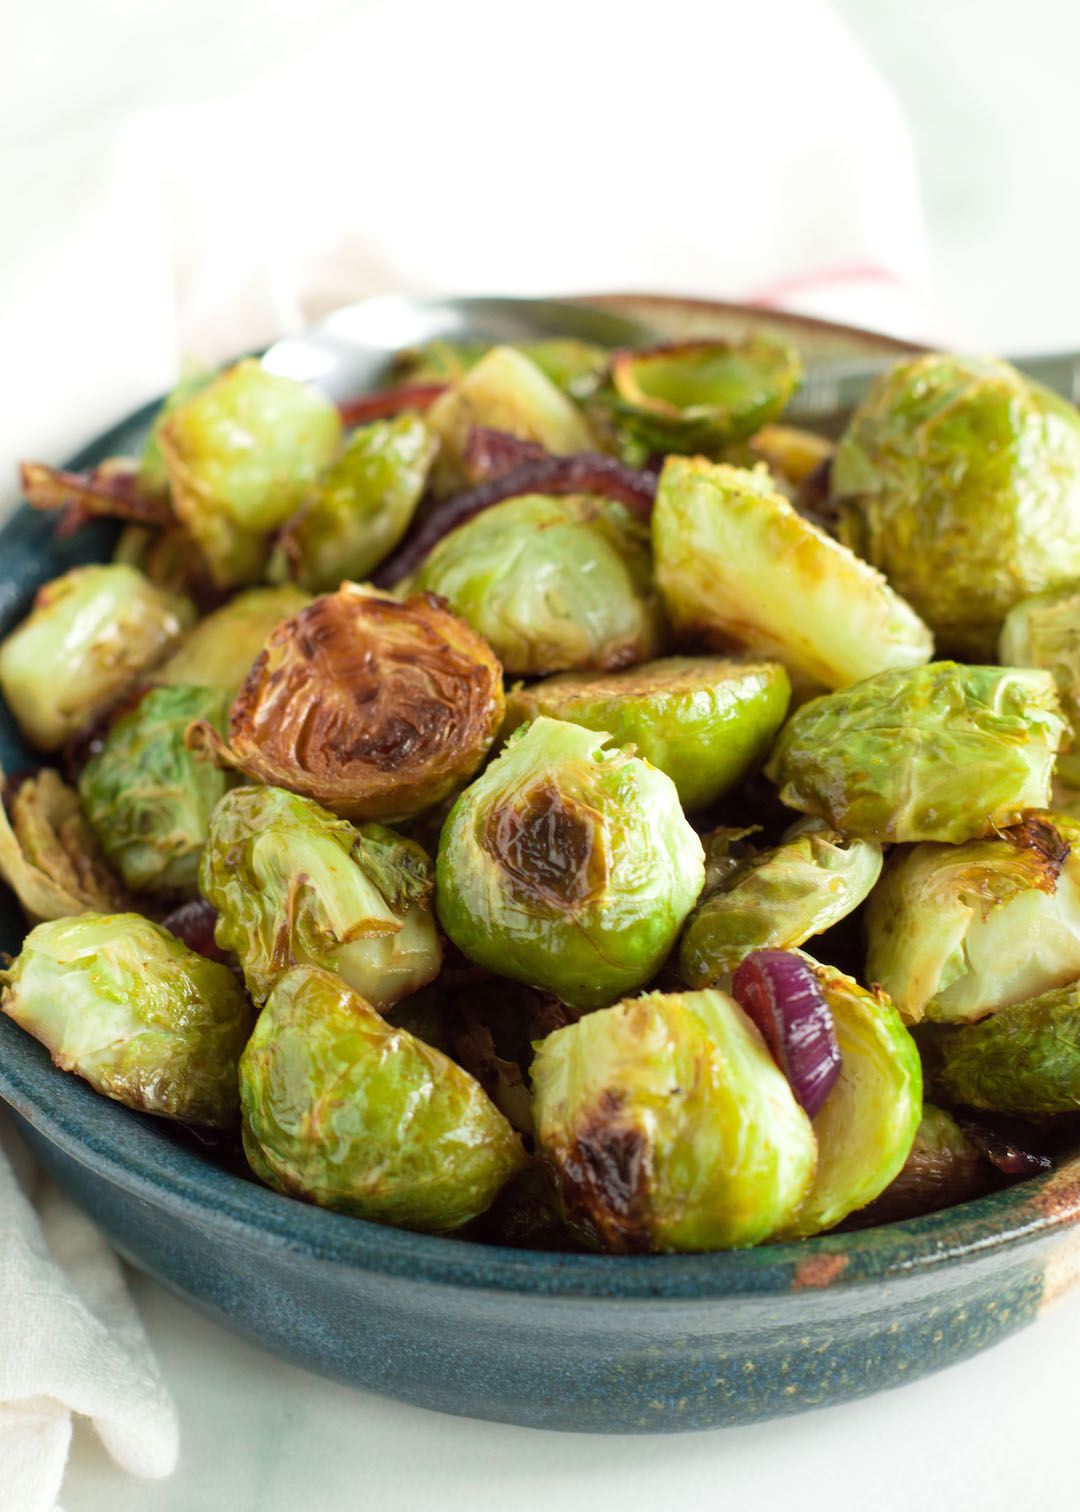 Perfectly tender and caramelized Honey Balsamic Brussels Sprouts are a tasty side dish for any warm and cozy fall dinner. This Brussels sprout recipe is easy to make, gluten free, dairy free, vegan possible and so very delicious.